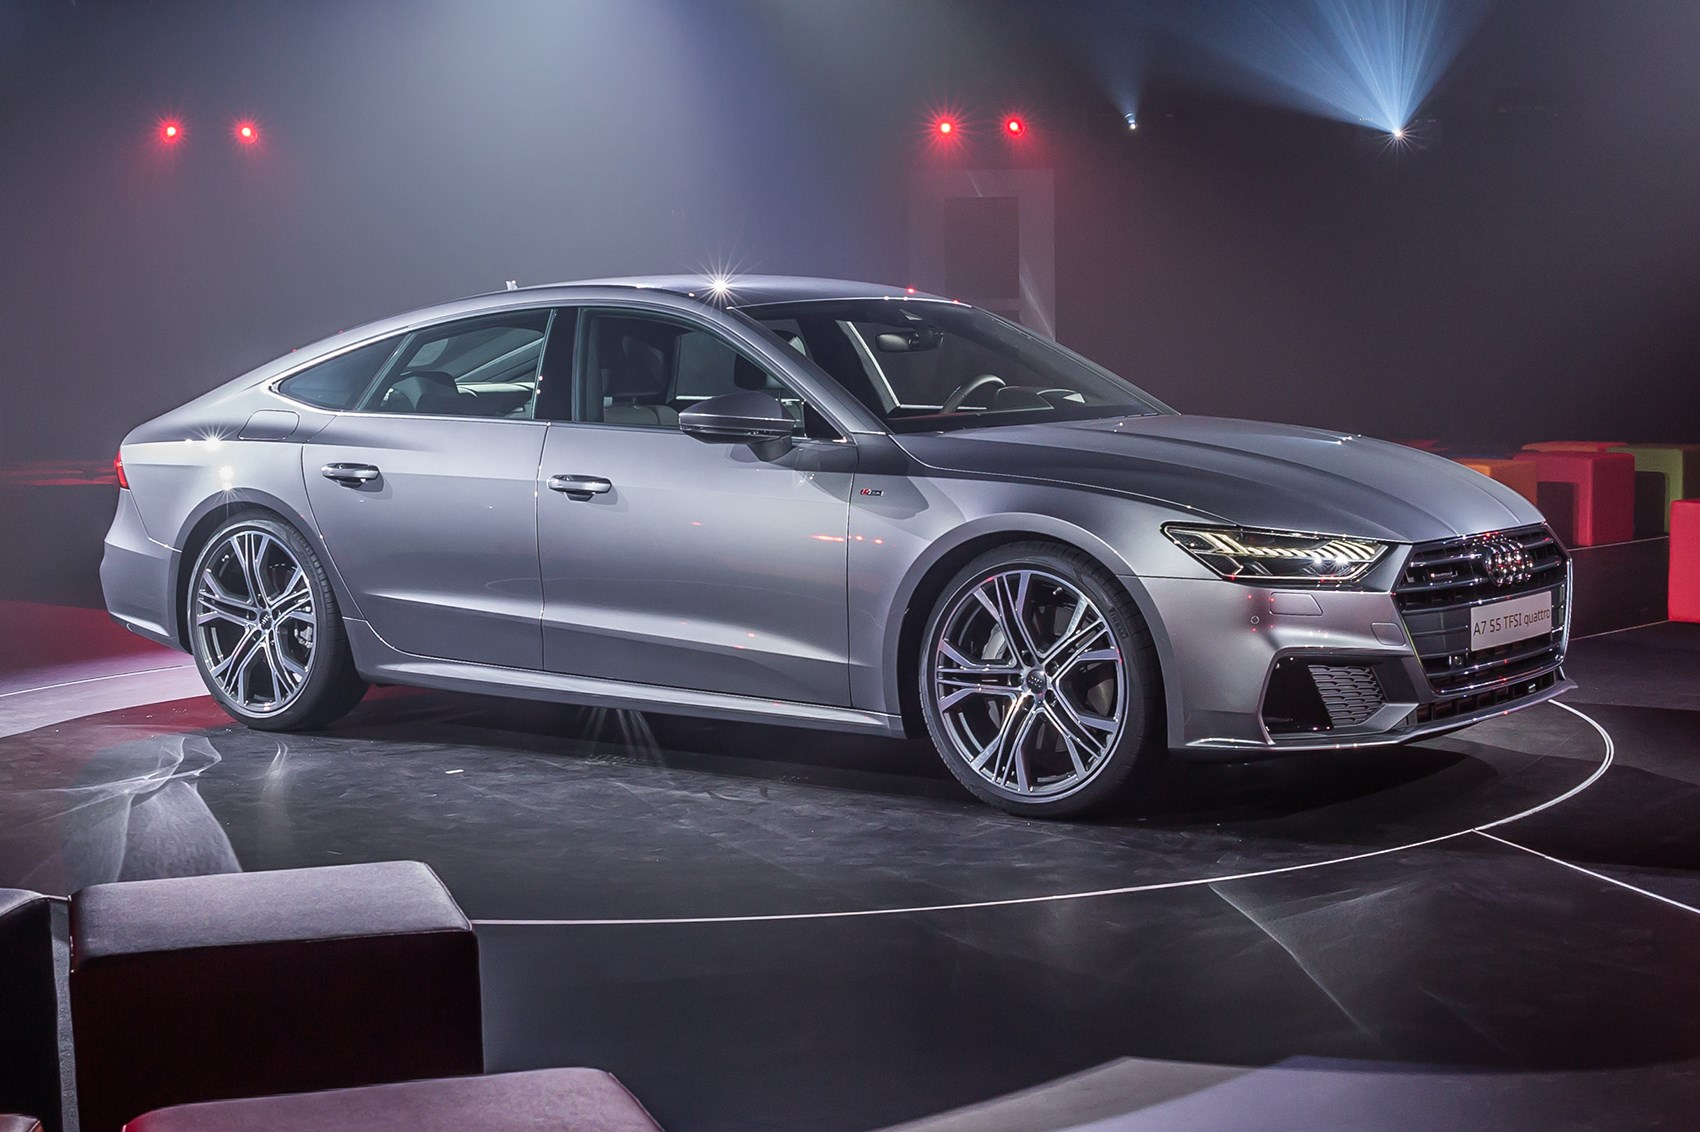 First look: 2018 Audi A7 – the A8's sleek and sporty new ...